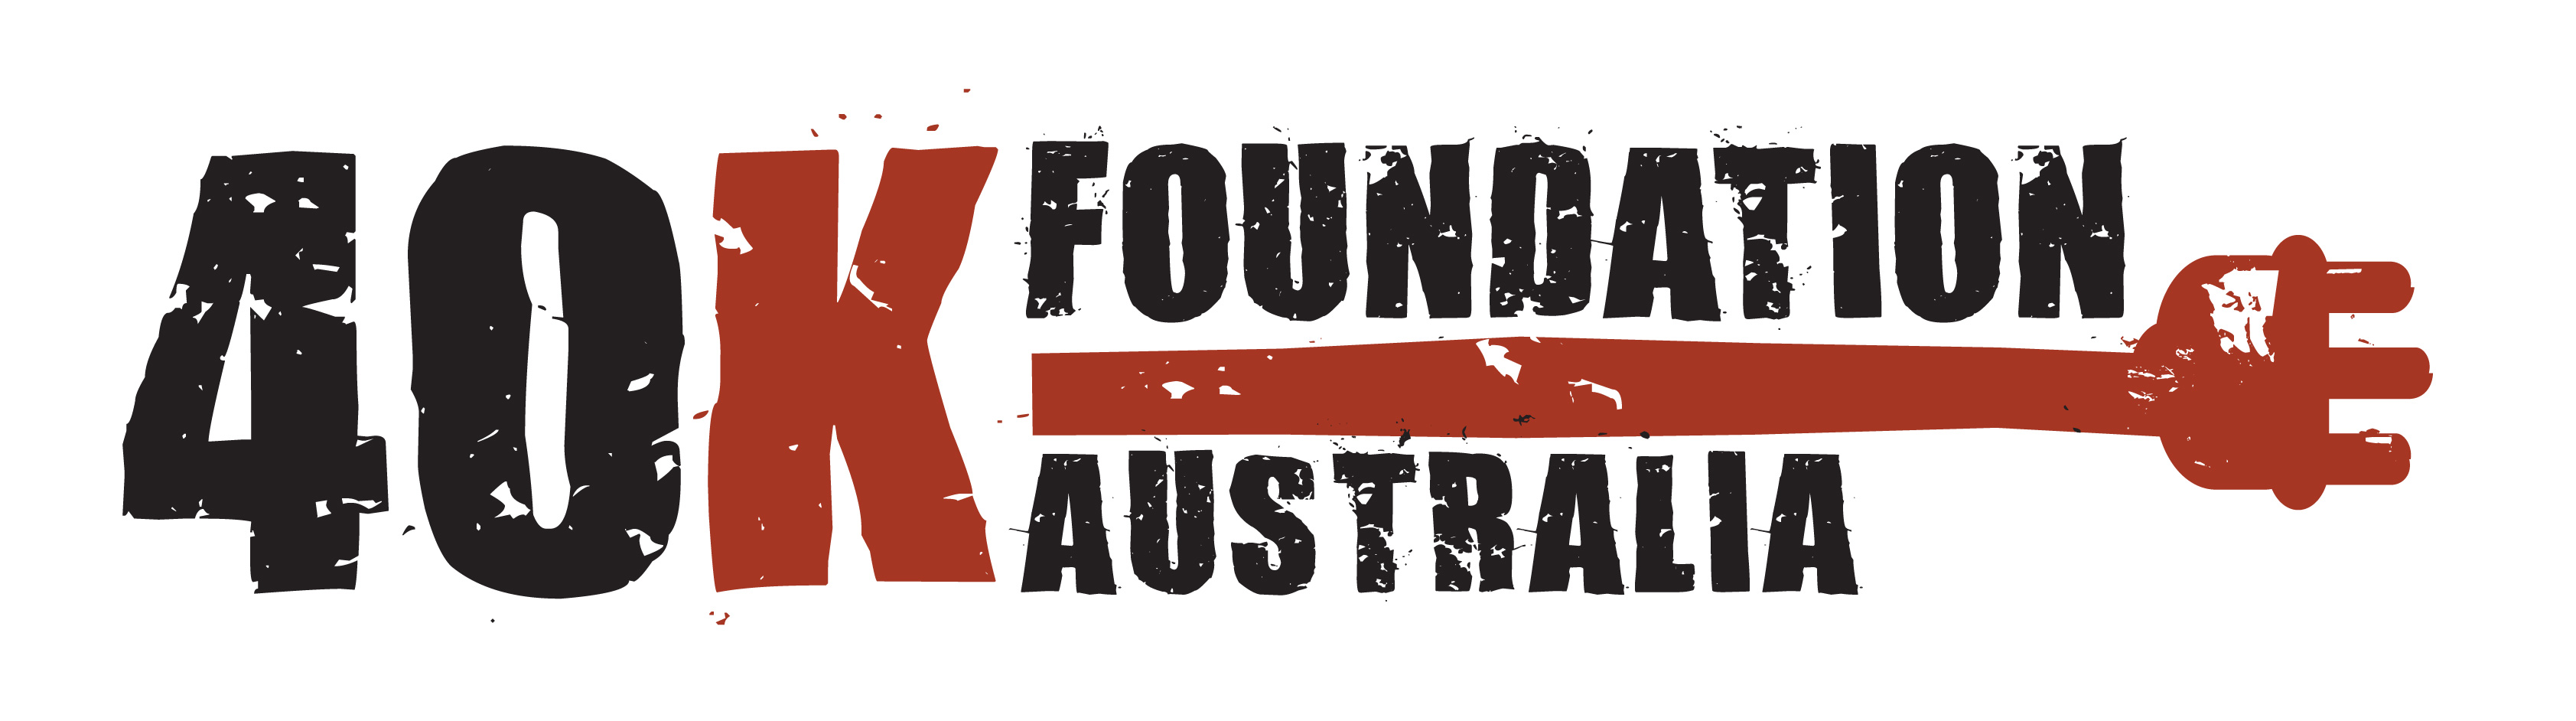 40K Foundation Australia logo